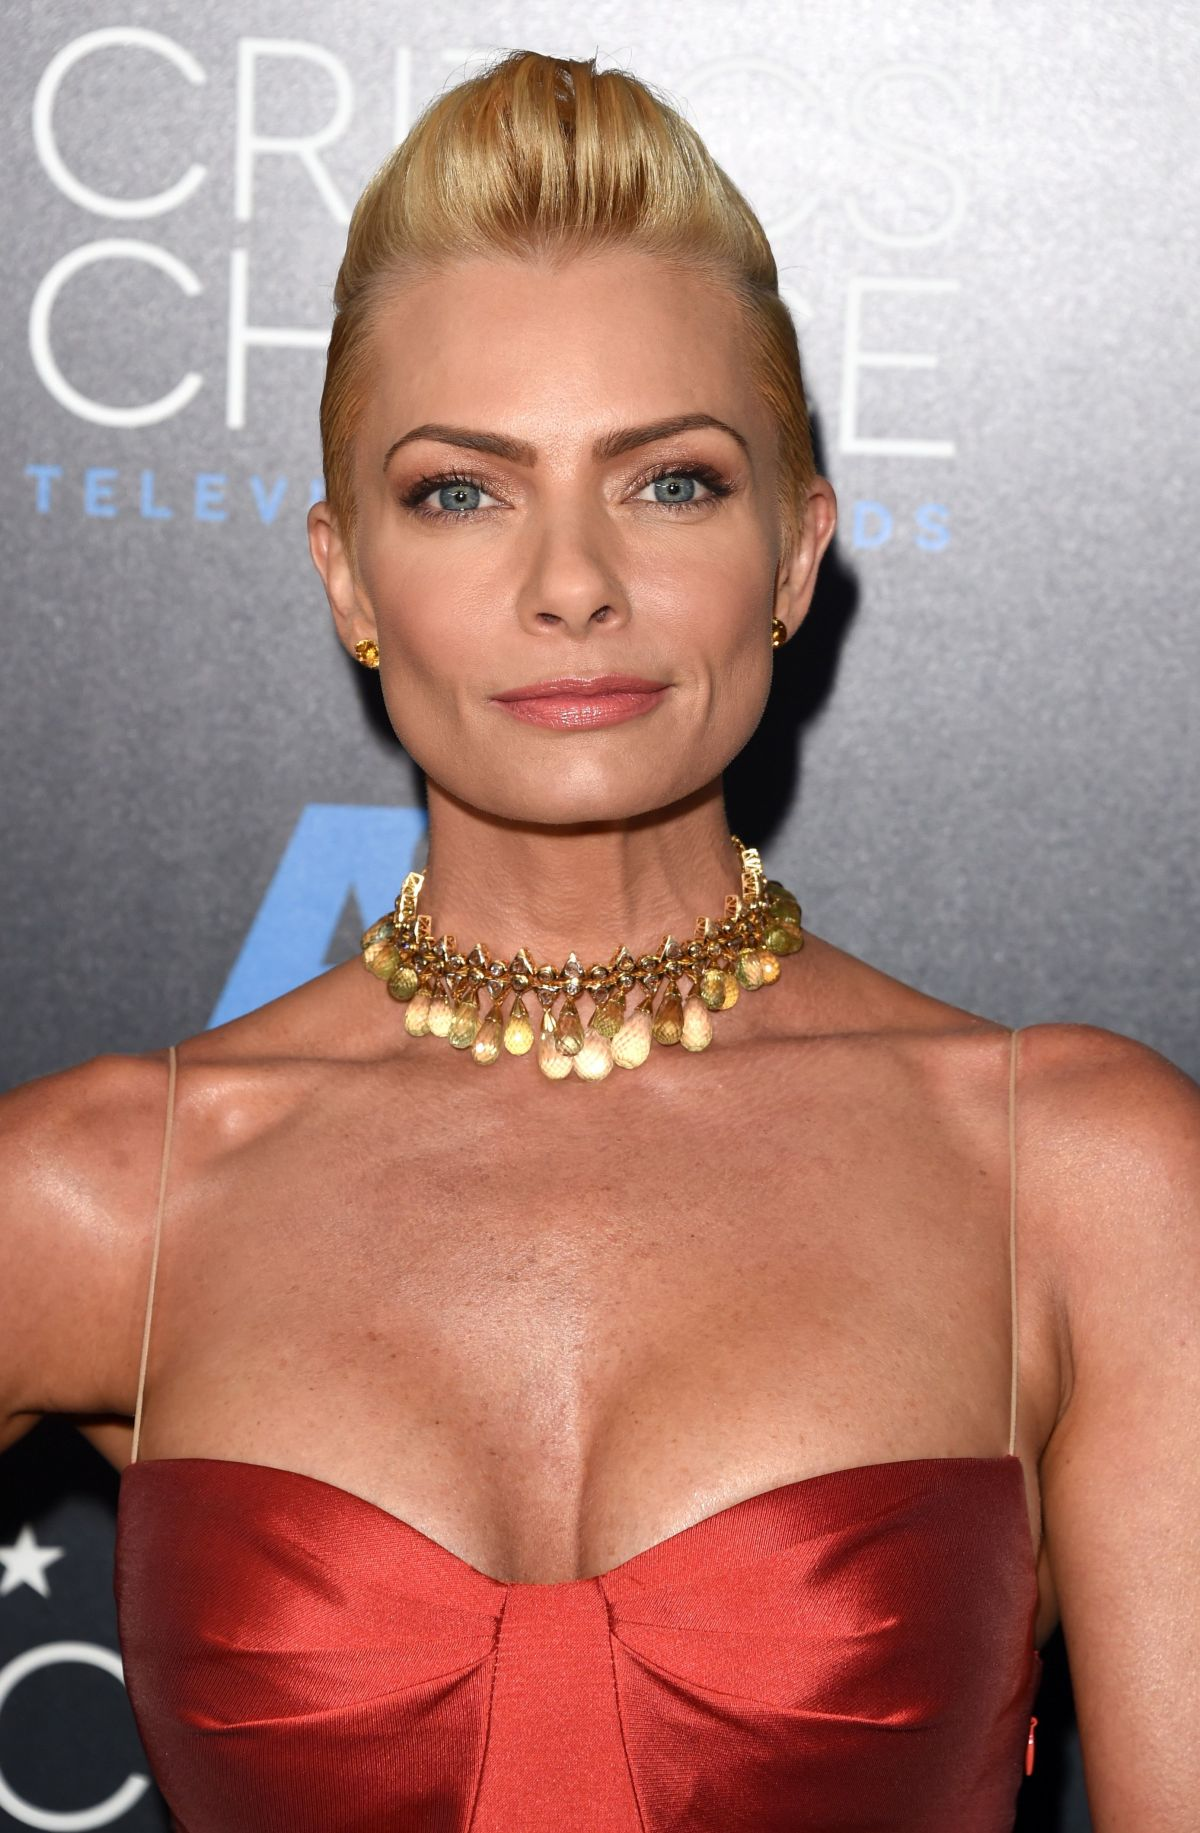 Images Jaime Pressly nude (81 foto and video), Tits, Paparazzi, Twitter, cleavage 2020